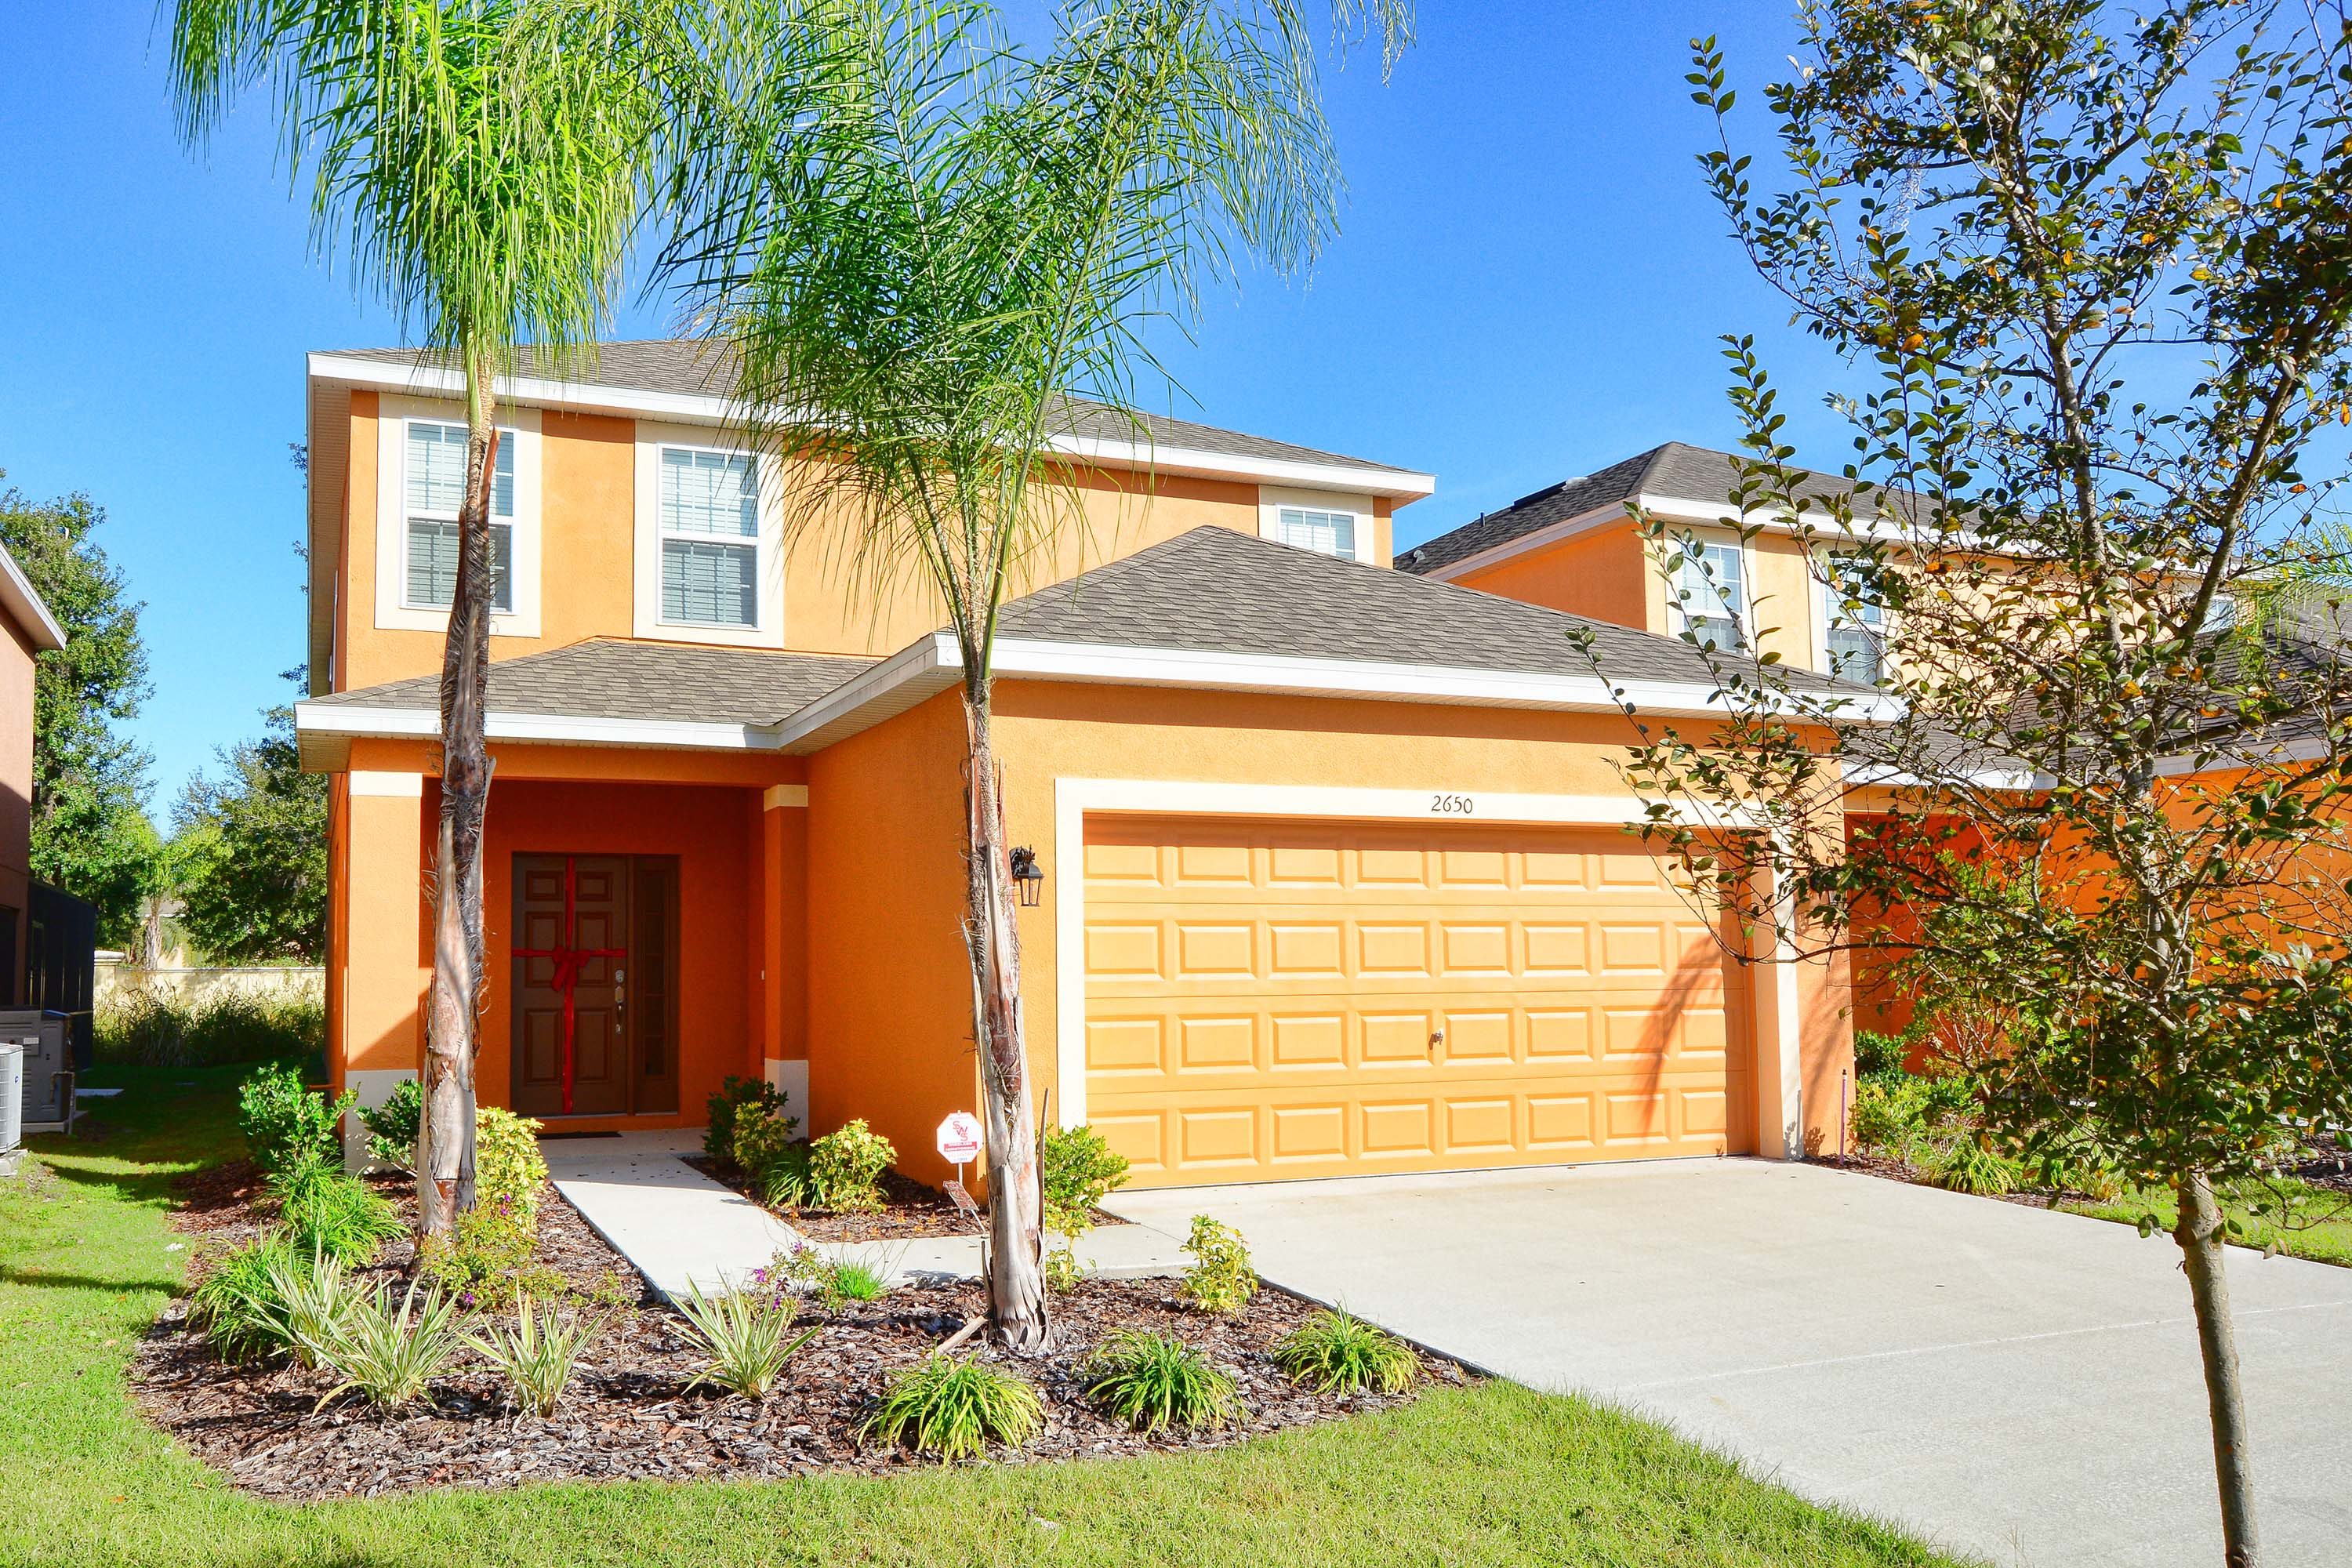 Do It Yourself Home Design: Vacation Homes For Rent In Kissimmee FL, Veranda Palms